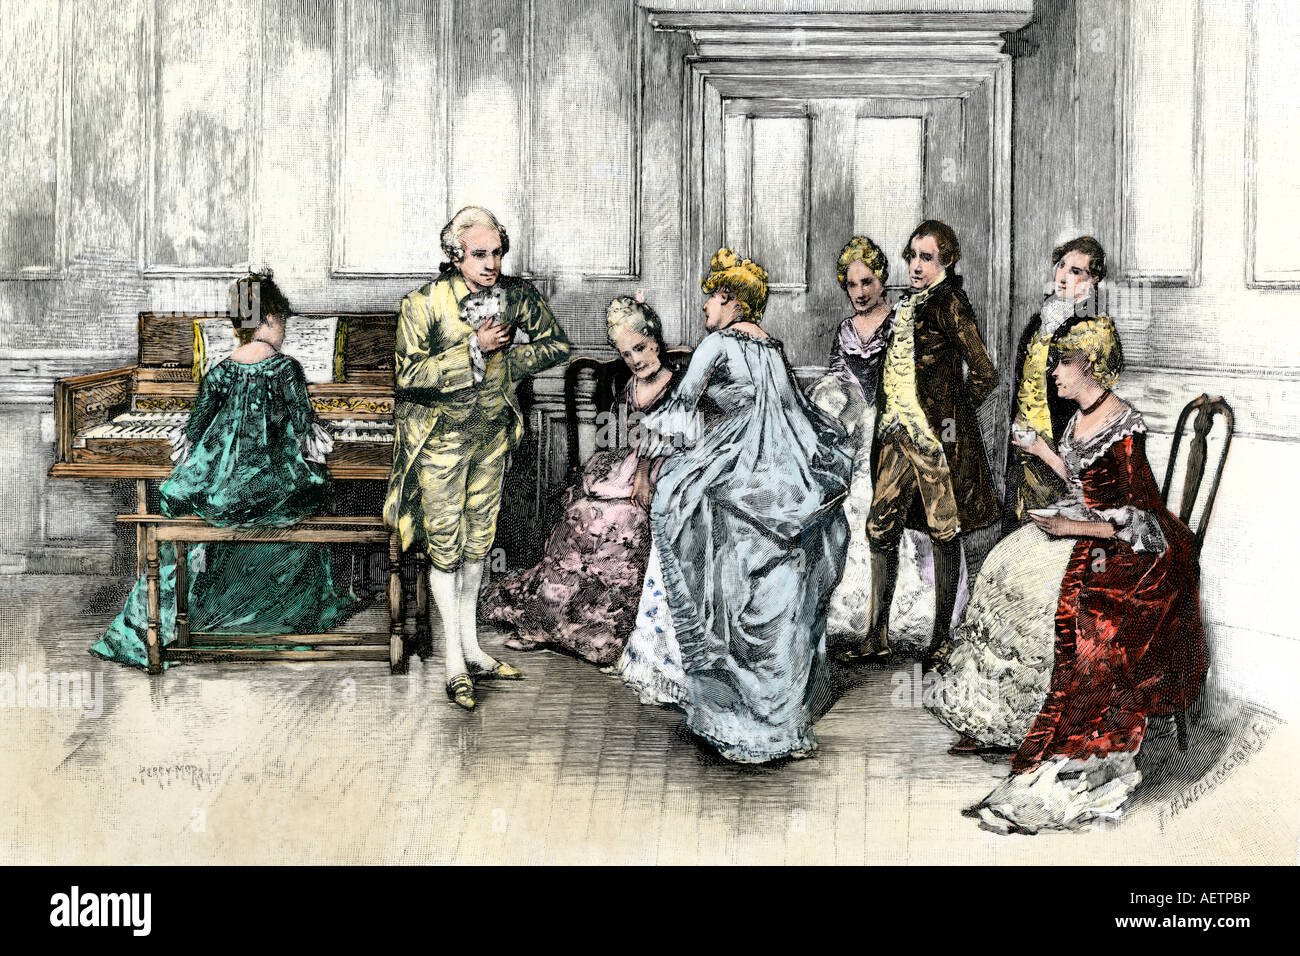 George Washington dancing a minuet at Sally Fairfax s home in colonial Virginia. Hand-colored woodcut - Stock Image